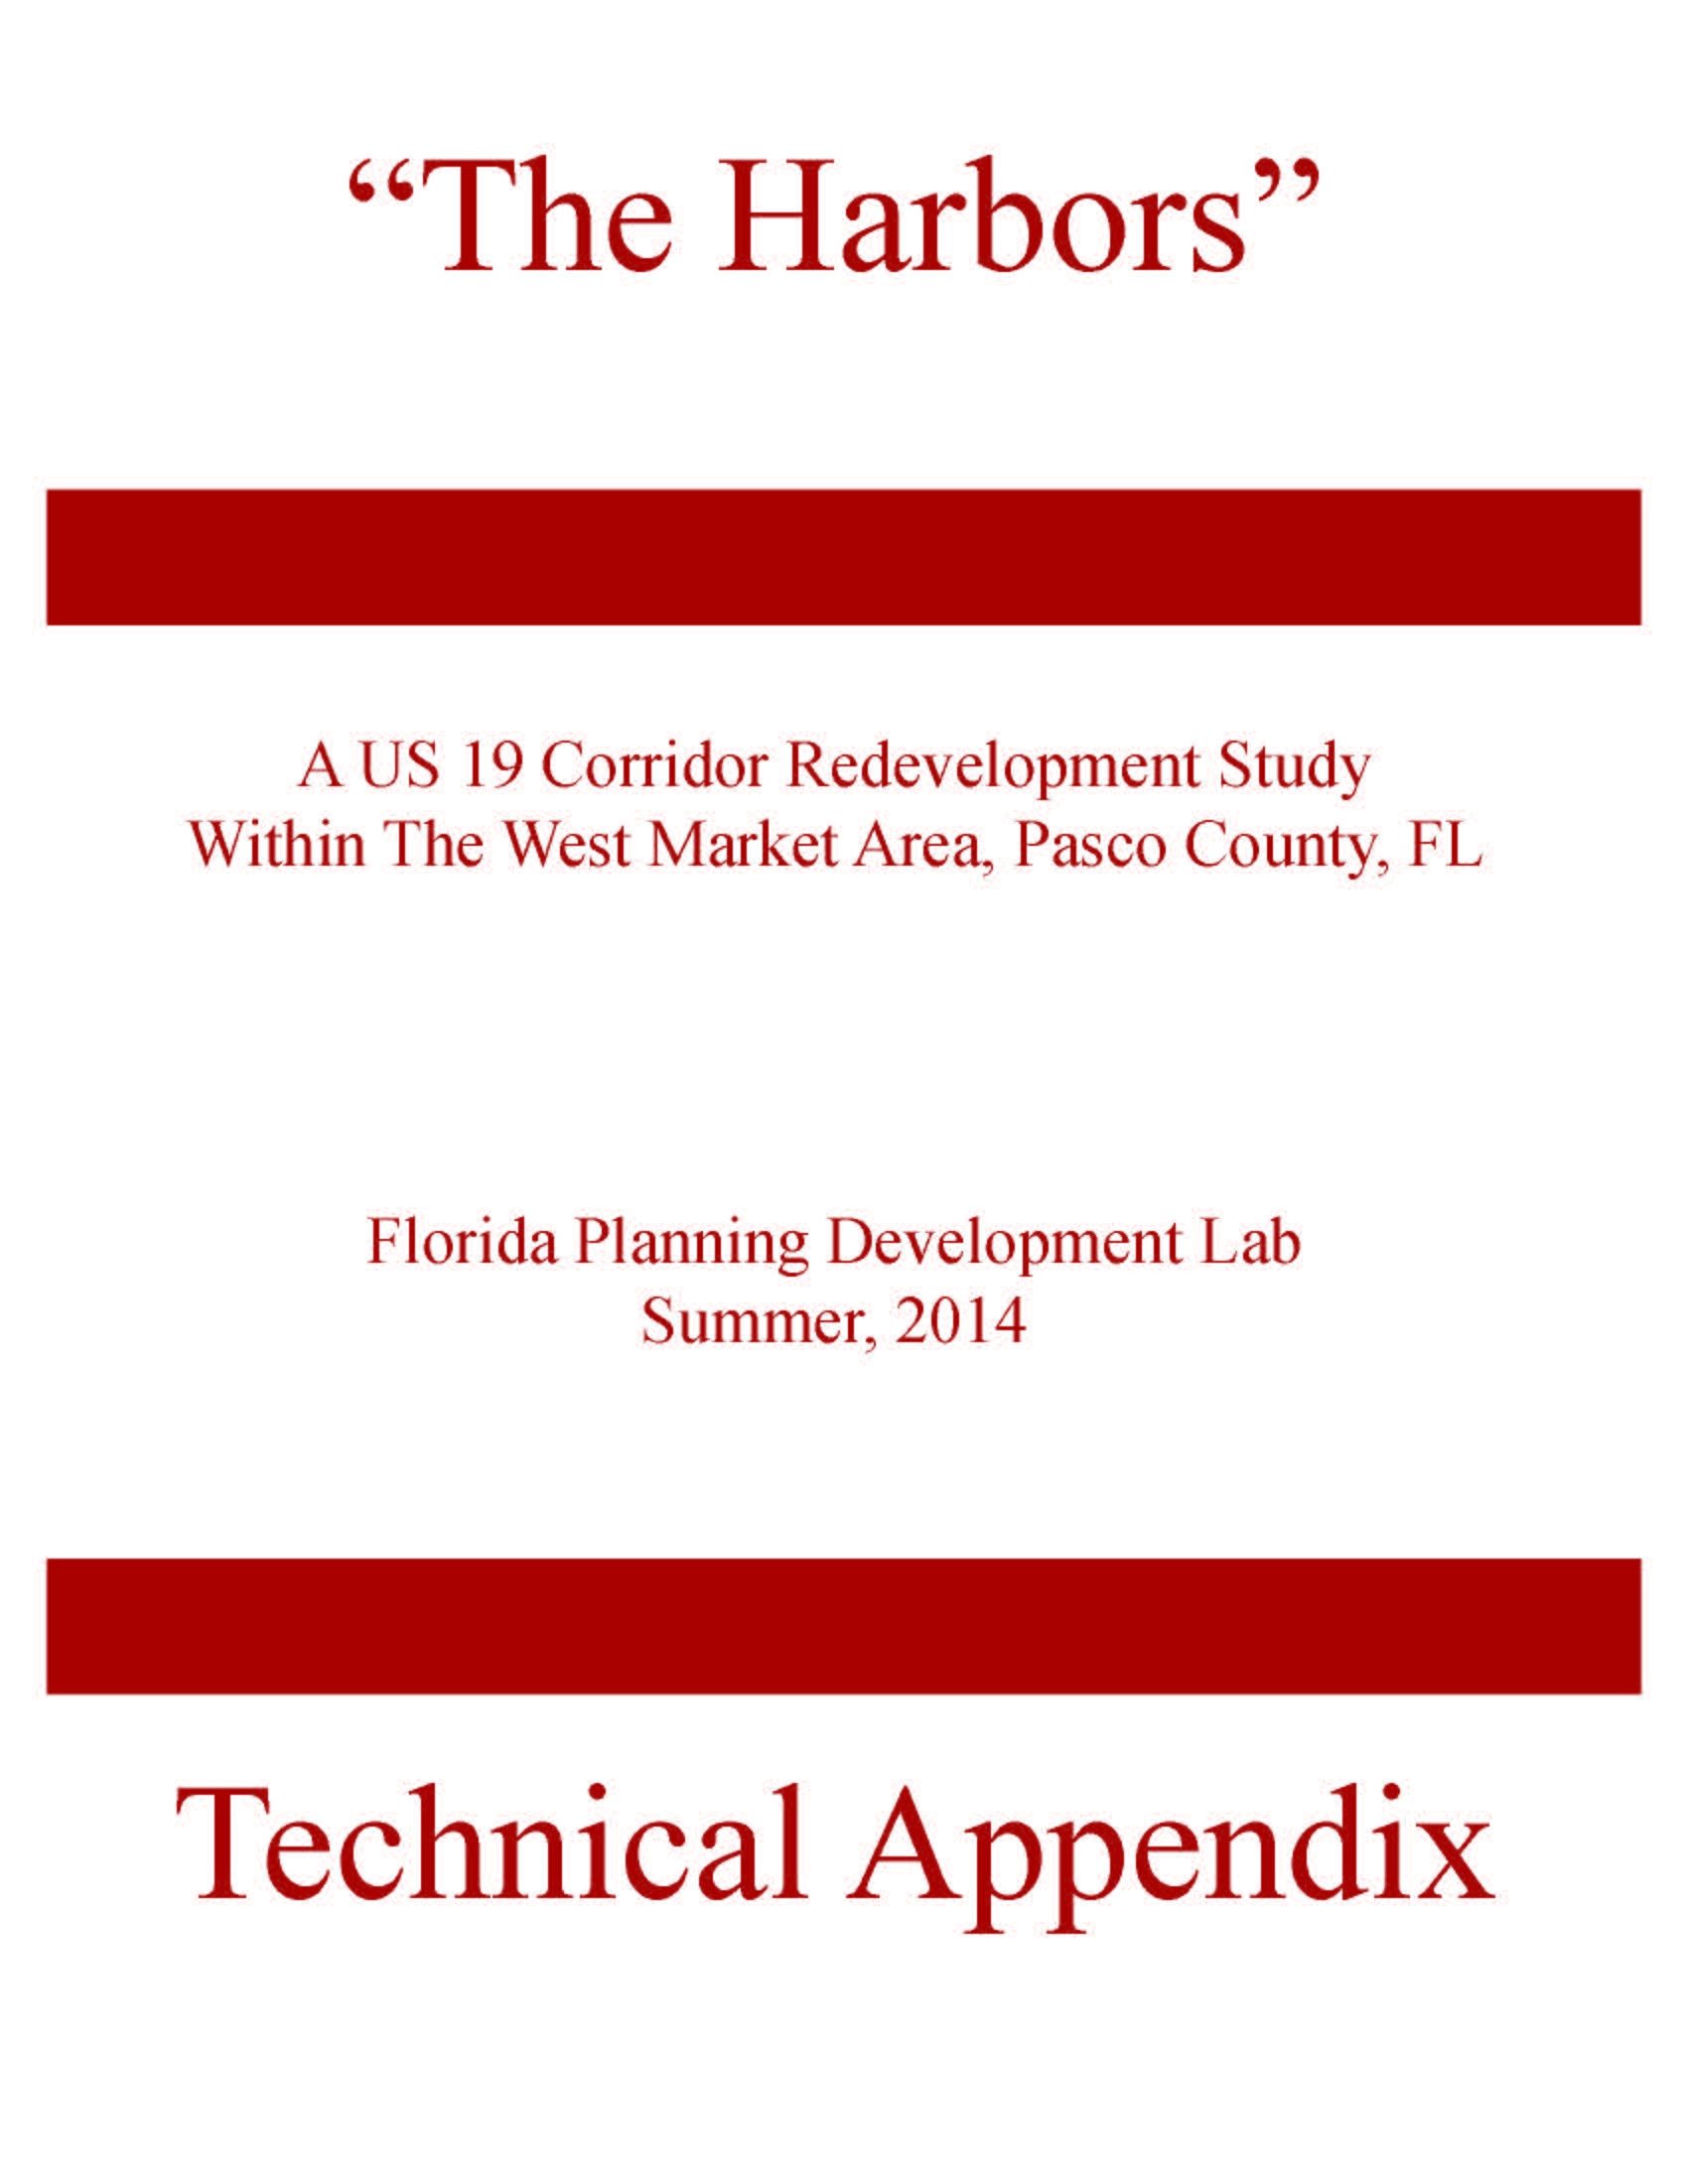 FSU Vision 19 - The Harbors Technical Appendix Cover